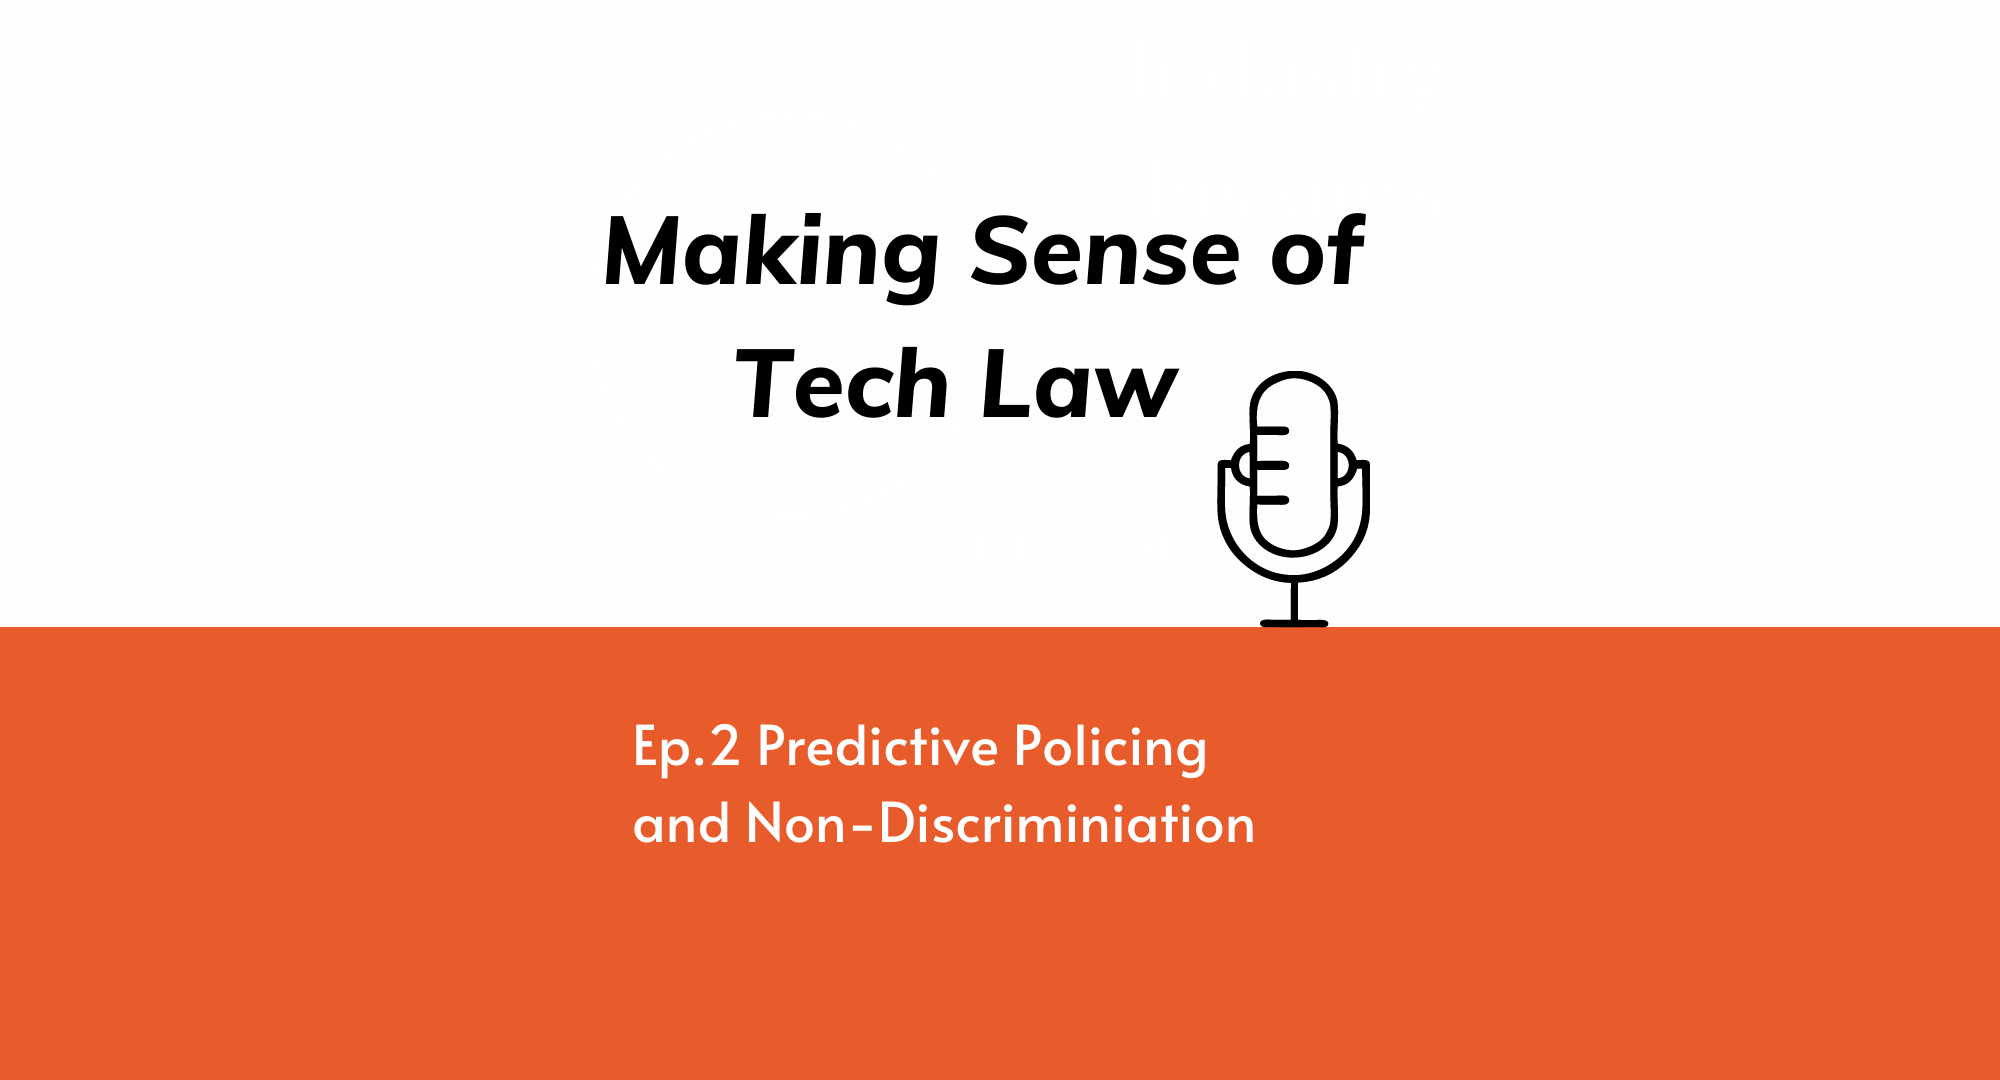 Making Sense of Tech Law Ep.2: Predictive Policing and Non-Discrimination